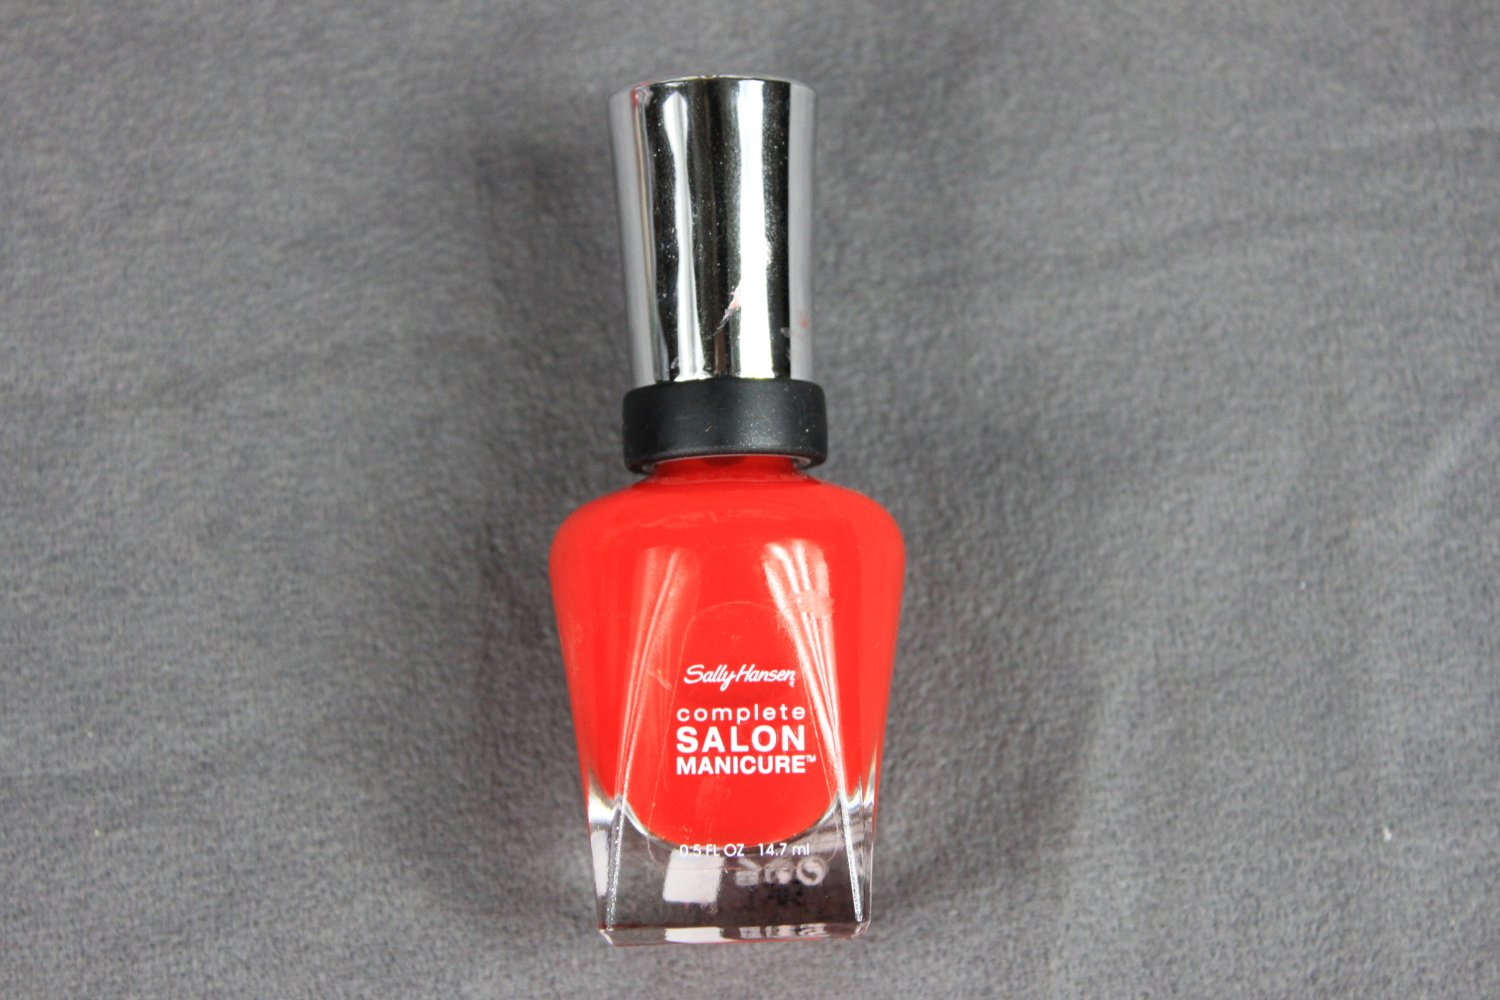 Sally Hansen LEO IN RIO Complete Salon Manicure Nail Polish